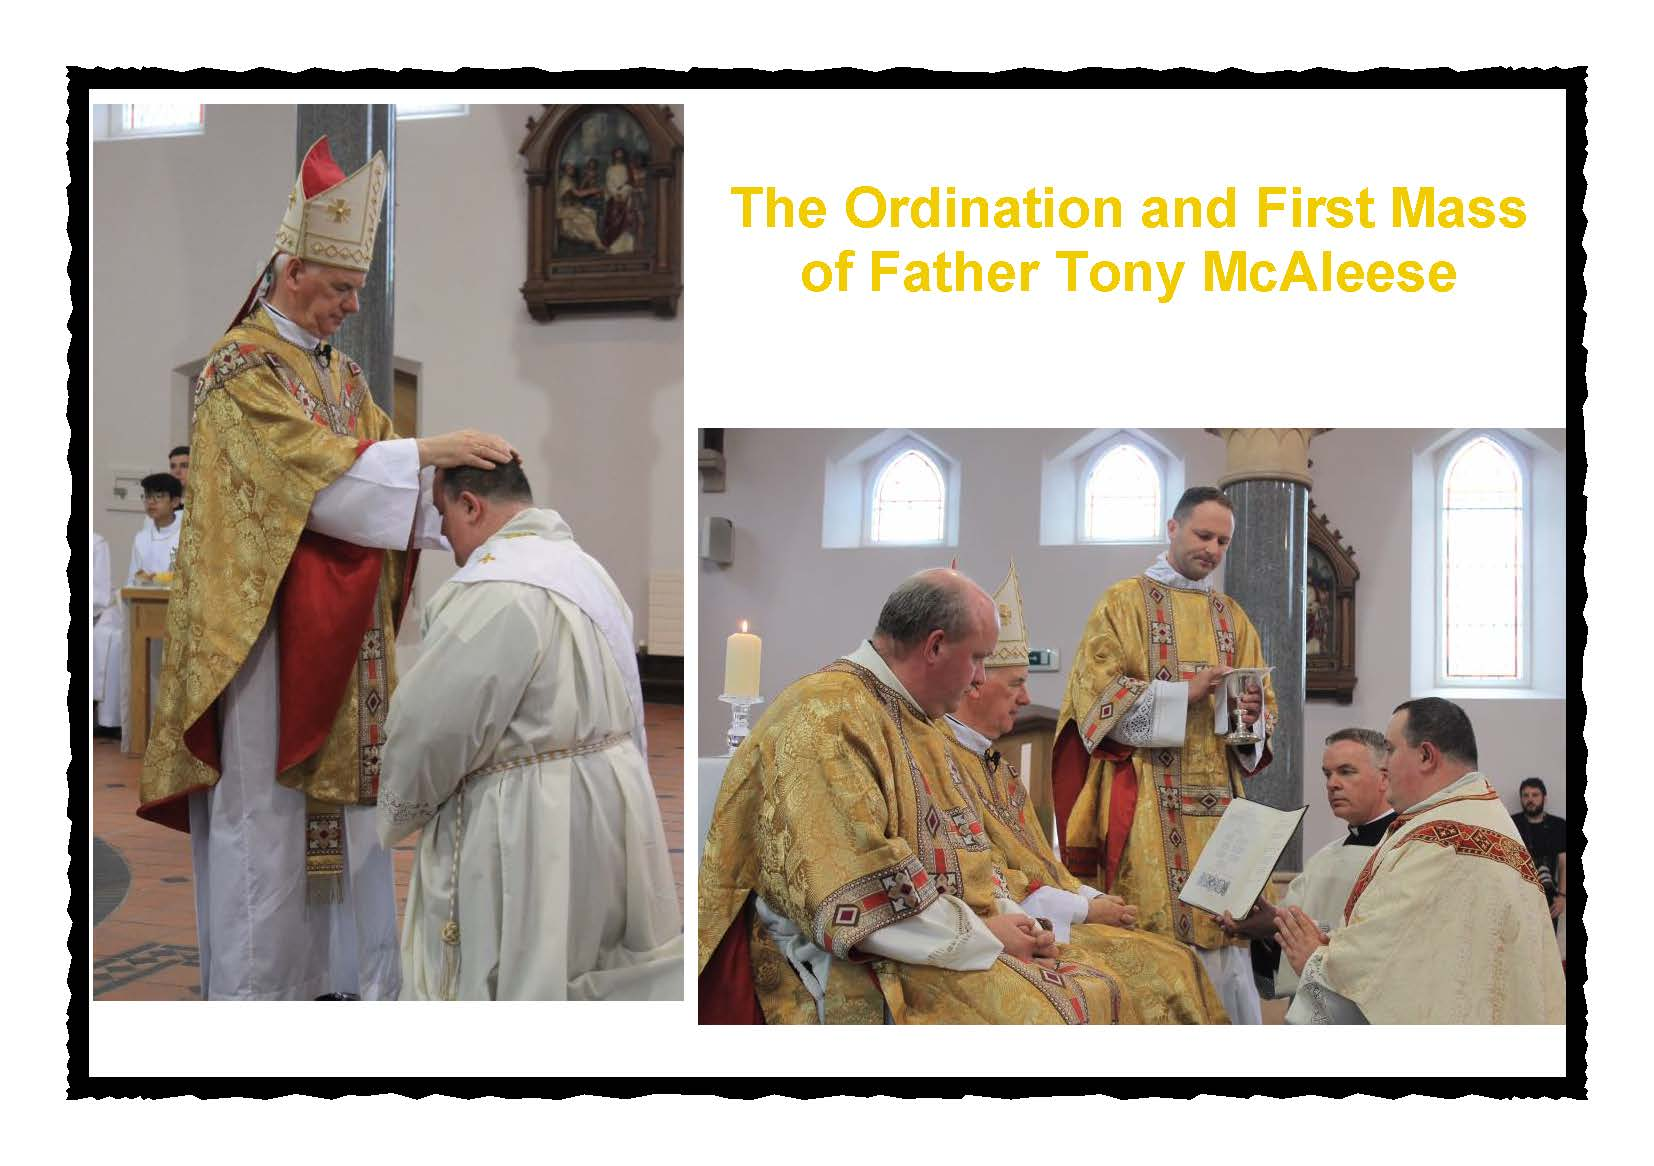 The-Ordination-and-First-Mass-of-Father-Tony-McAleese